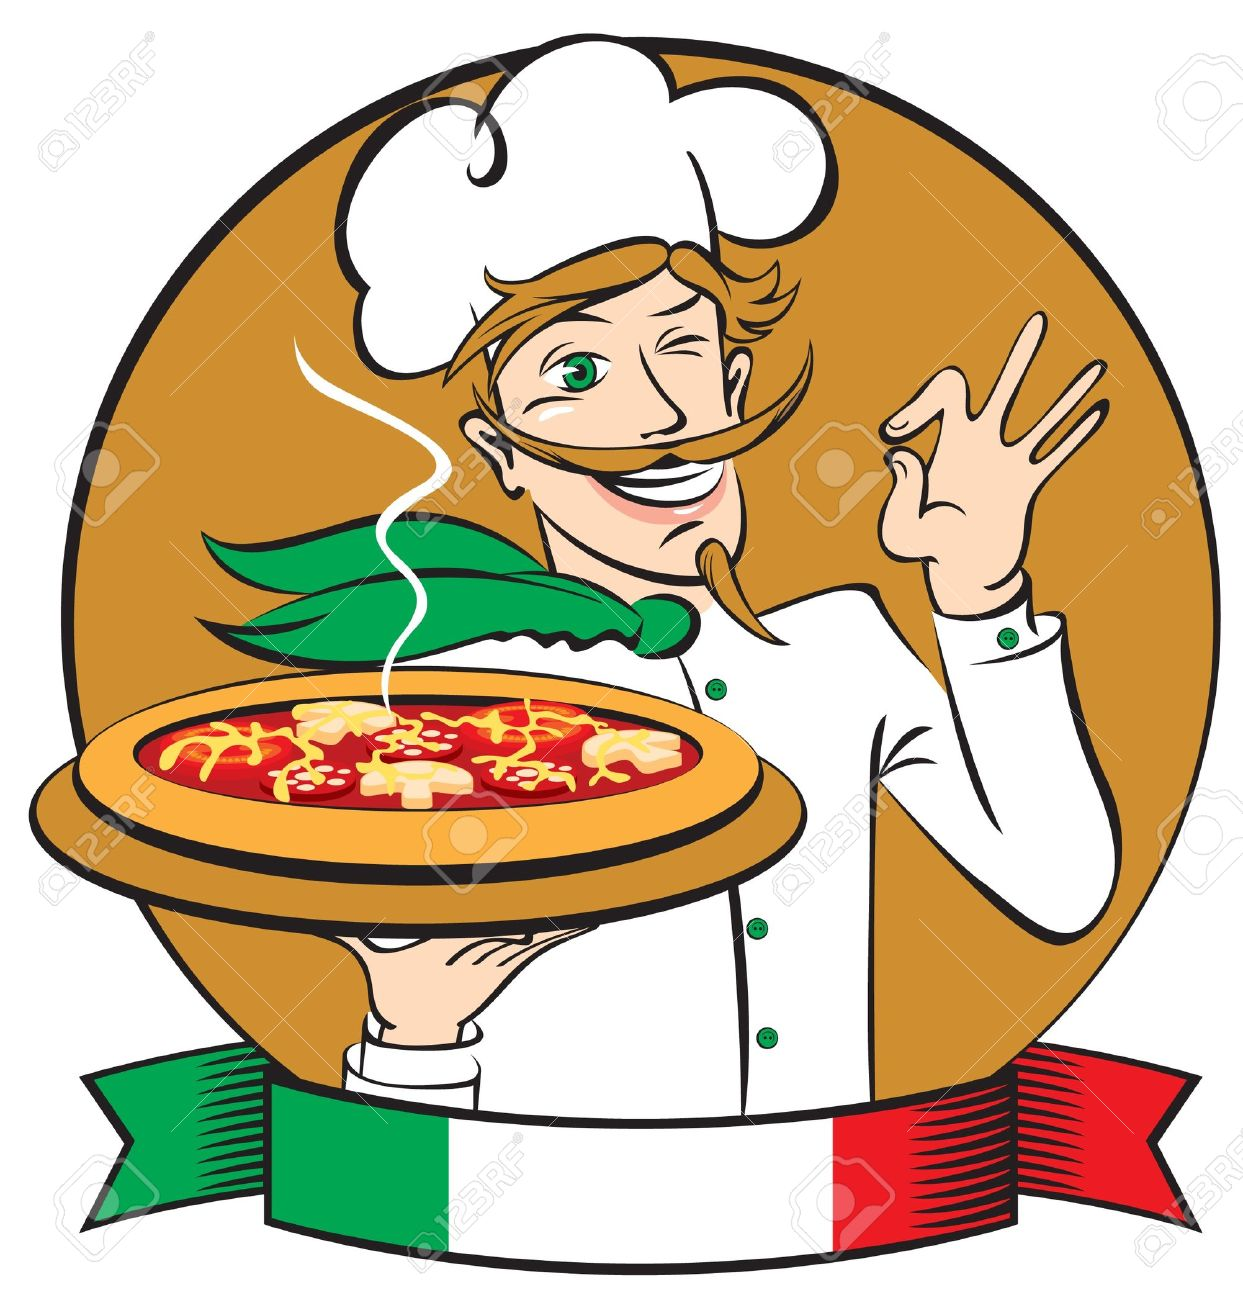 Italy clipart lunch italian. Food free download best